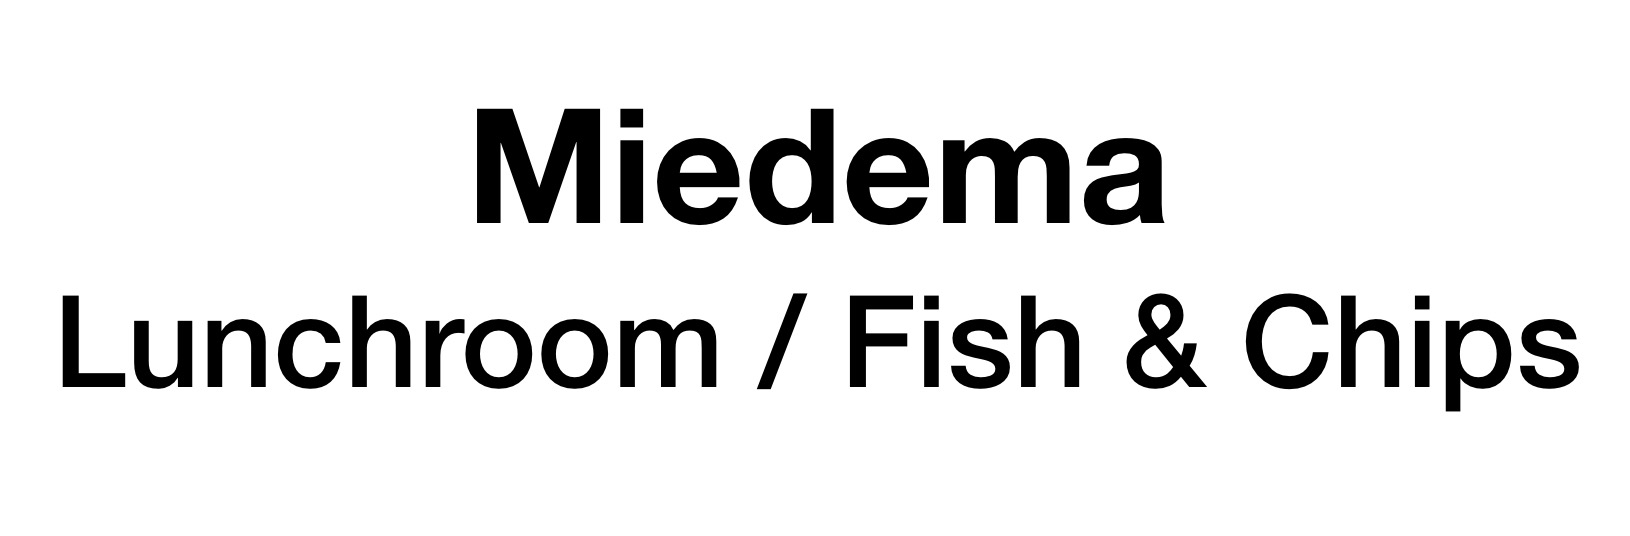 Miedema Fish & Chips/Lunchroom